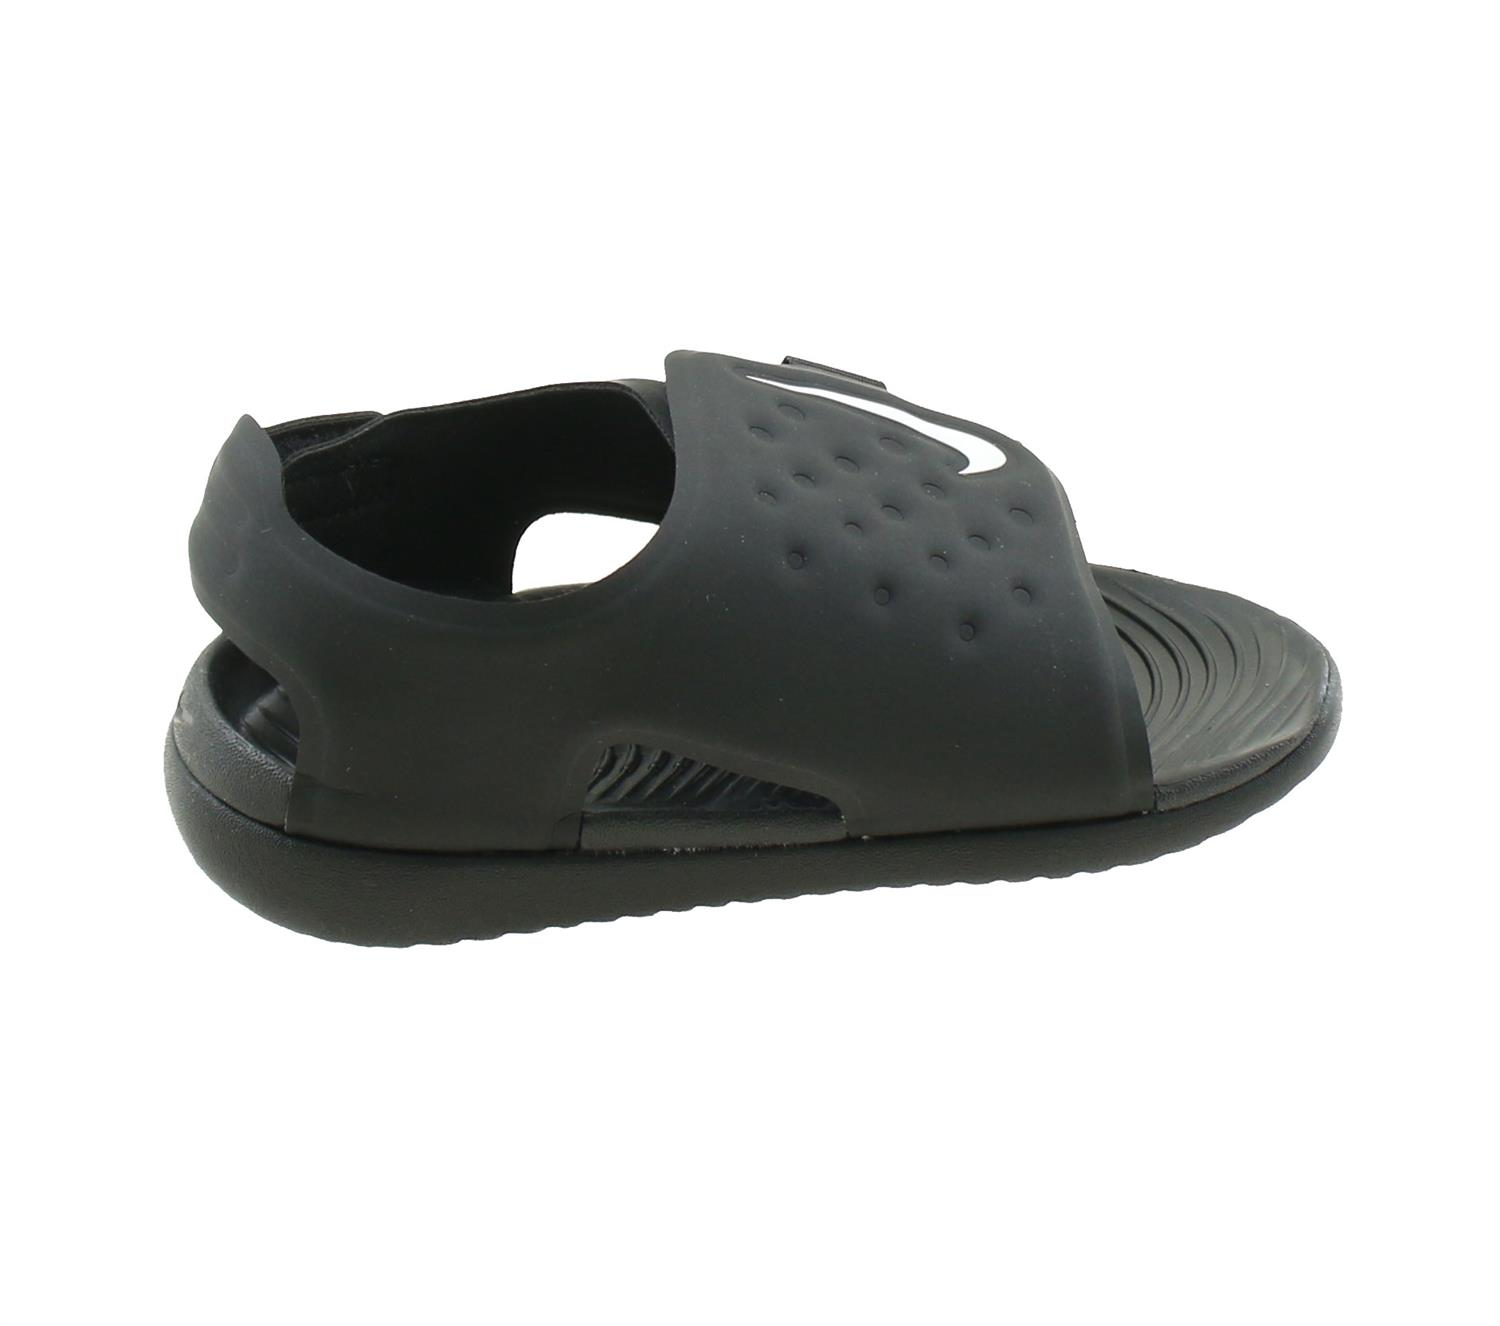 56b10973bd4 Nike Sunray Adjust 5 Peuter Sandalen. AJ9077 001 Black White. Product  afbeelding Product afbeelding ...